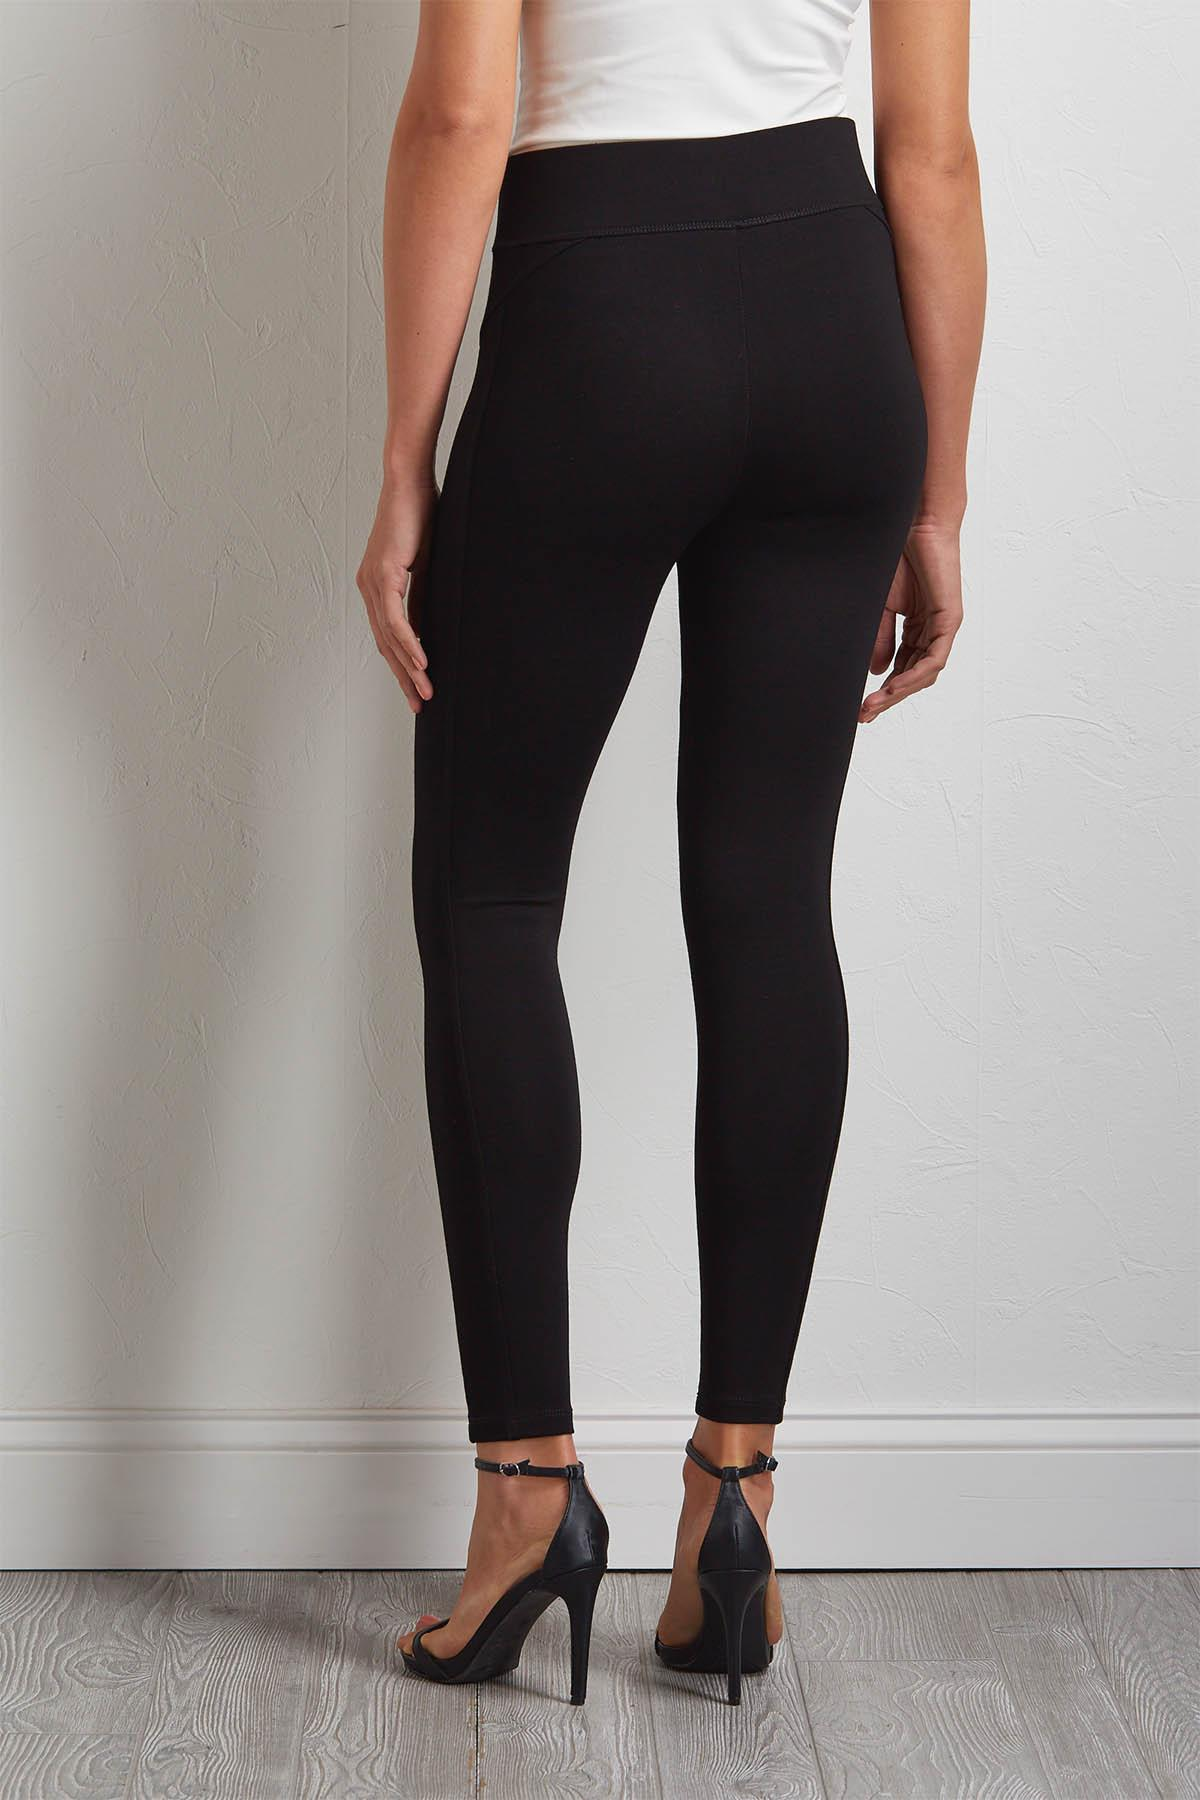 Black Ponte Leggings